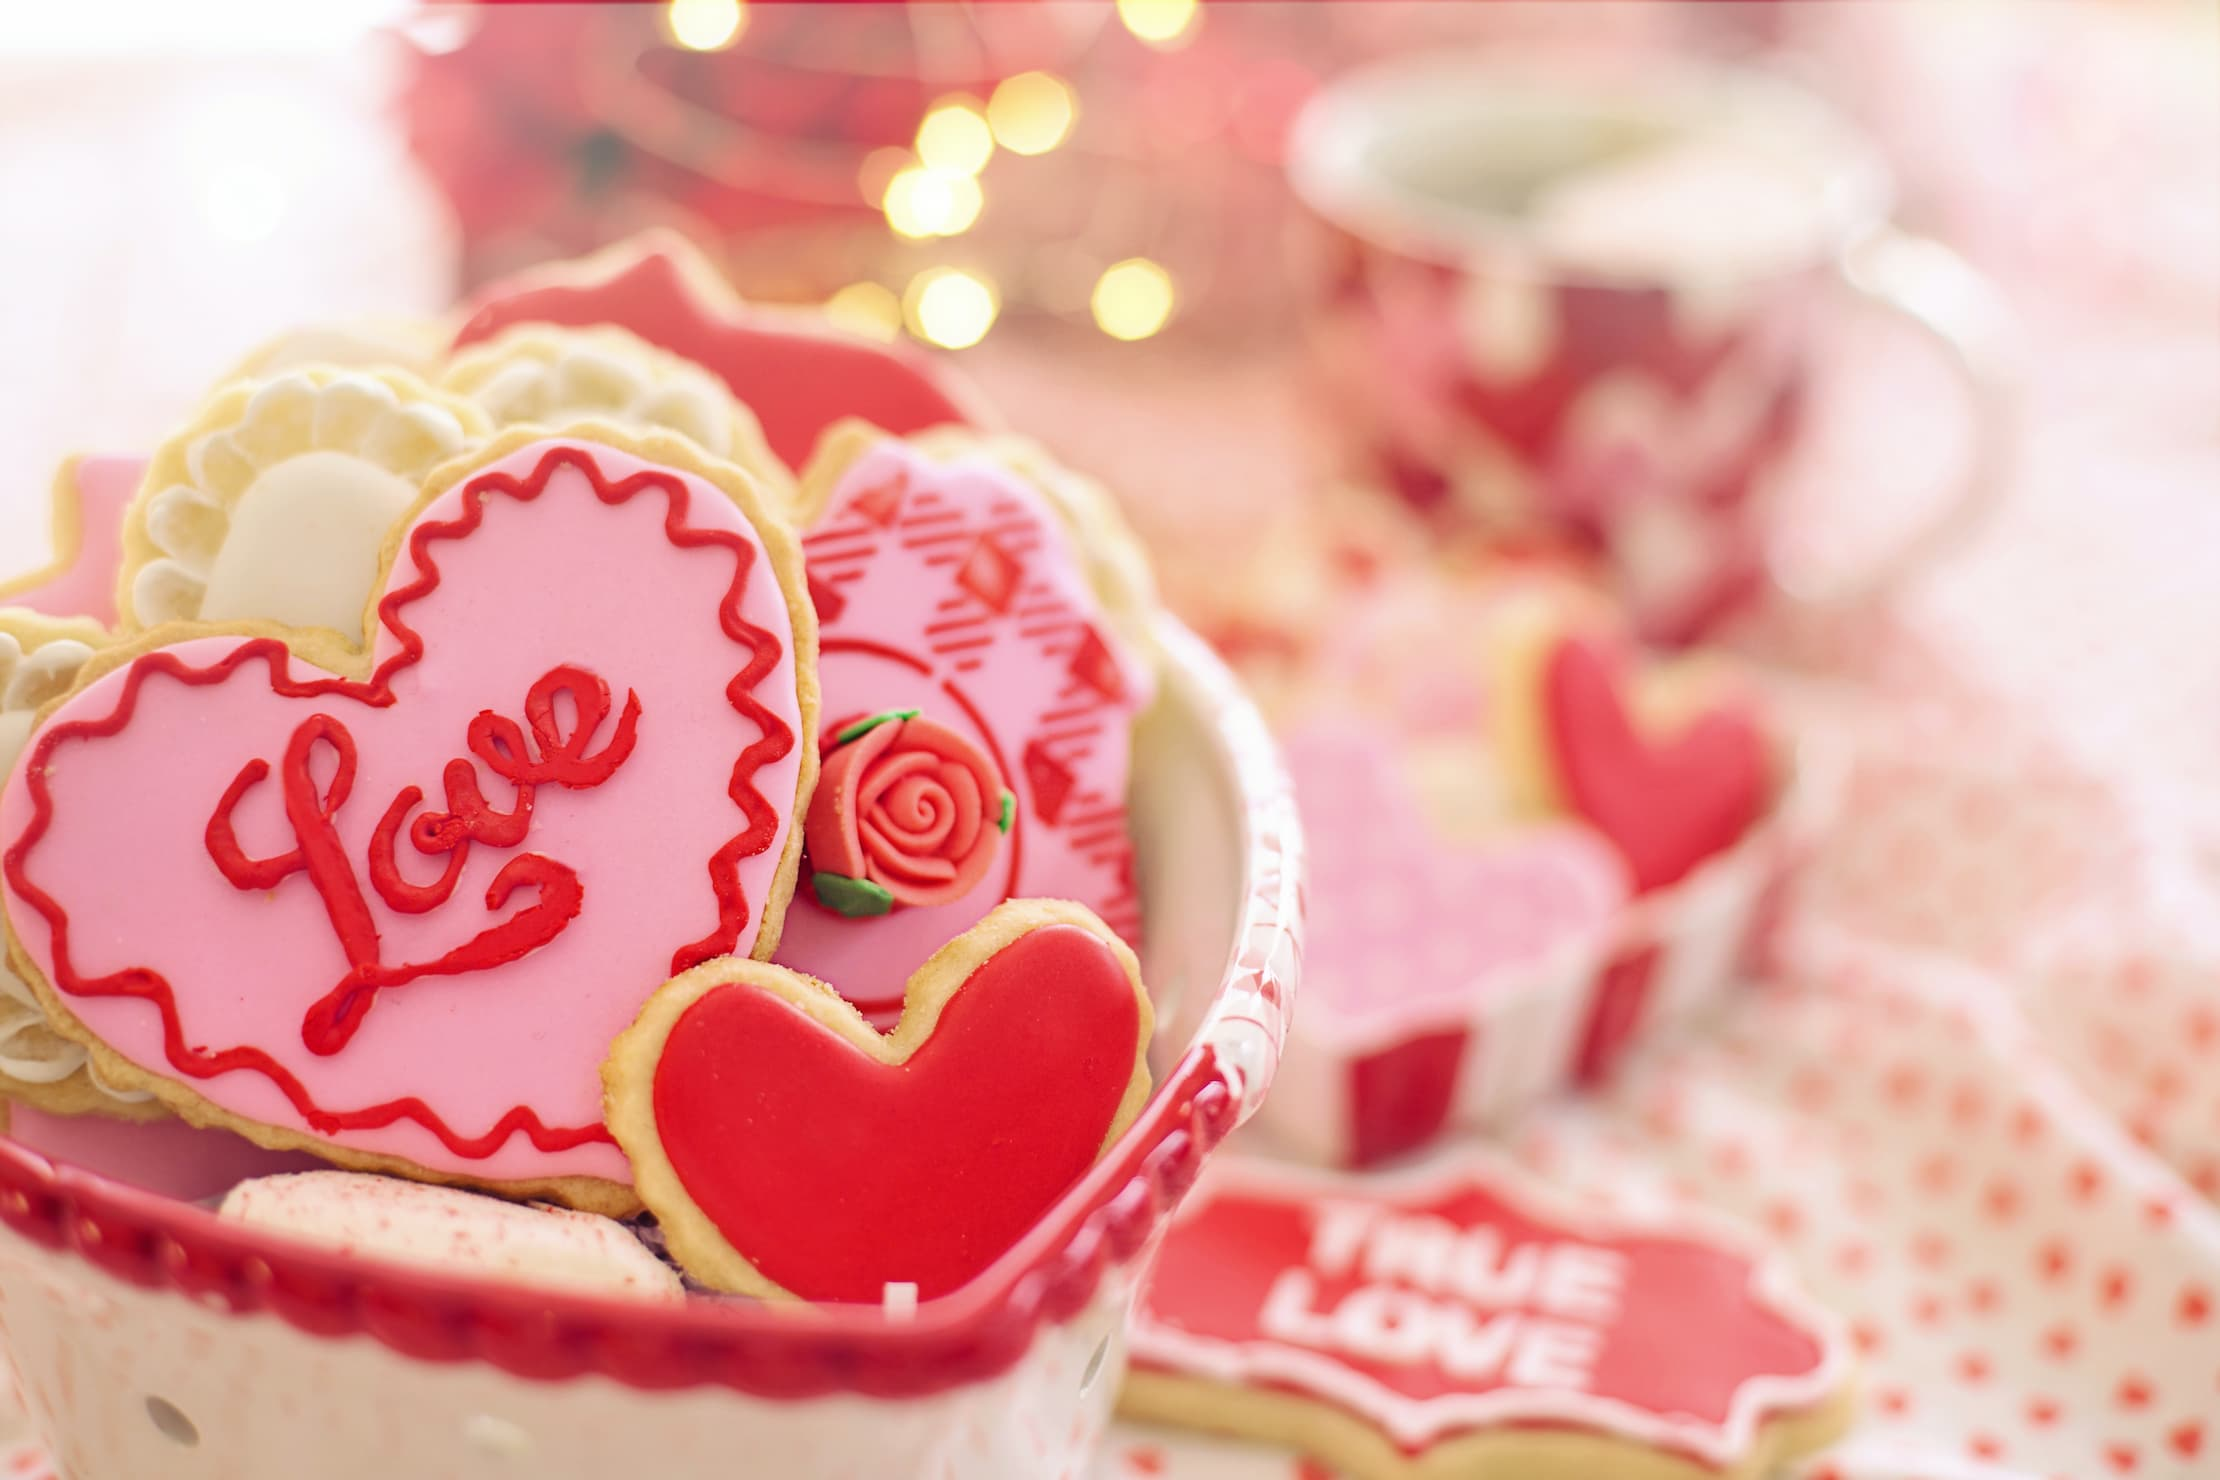 heart shaped cookies on a table with one with the word Love